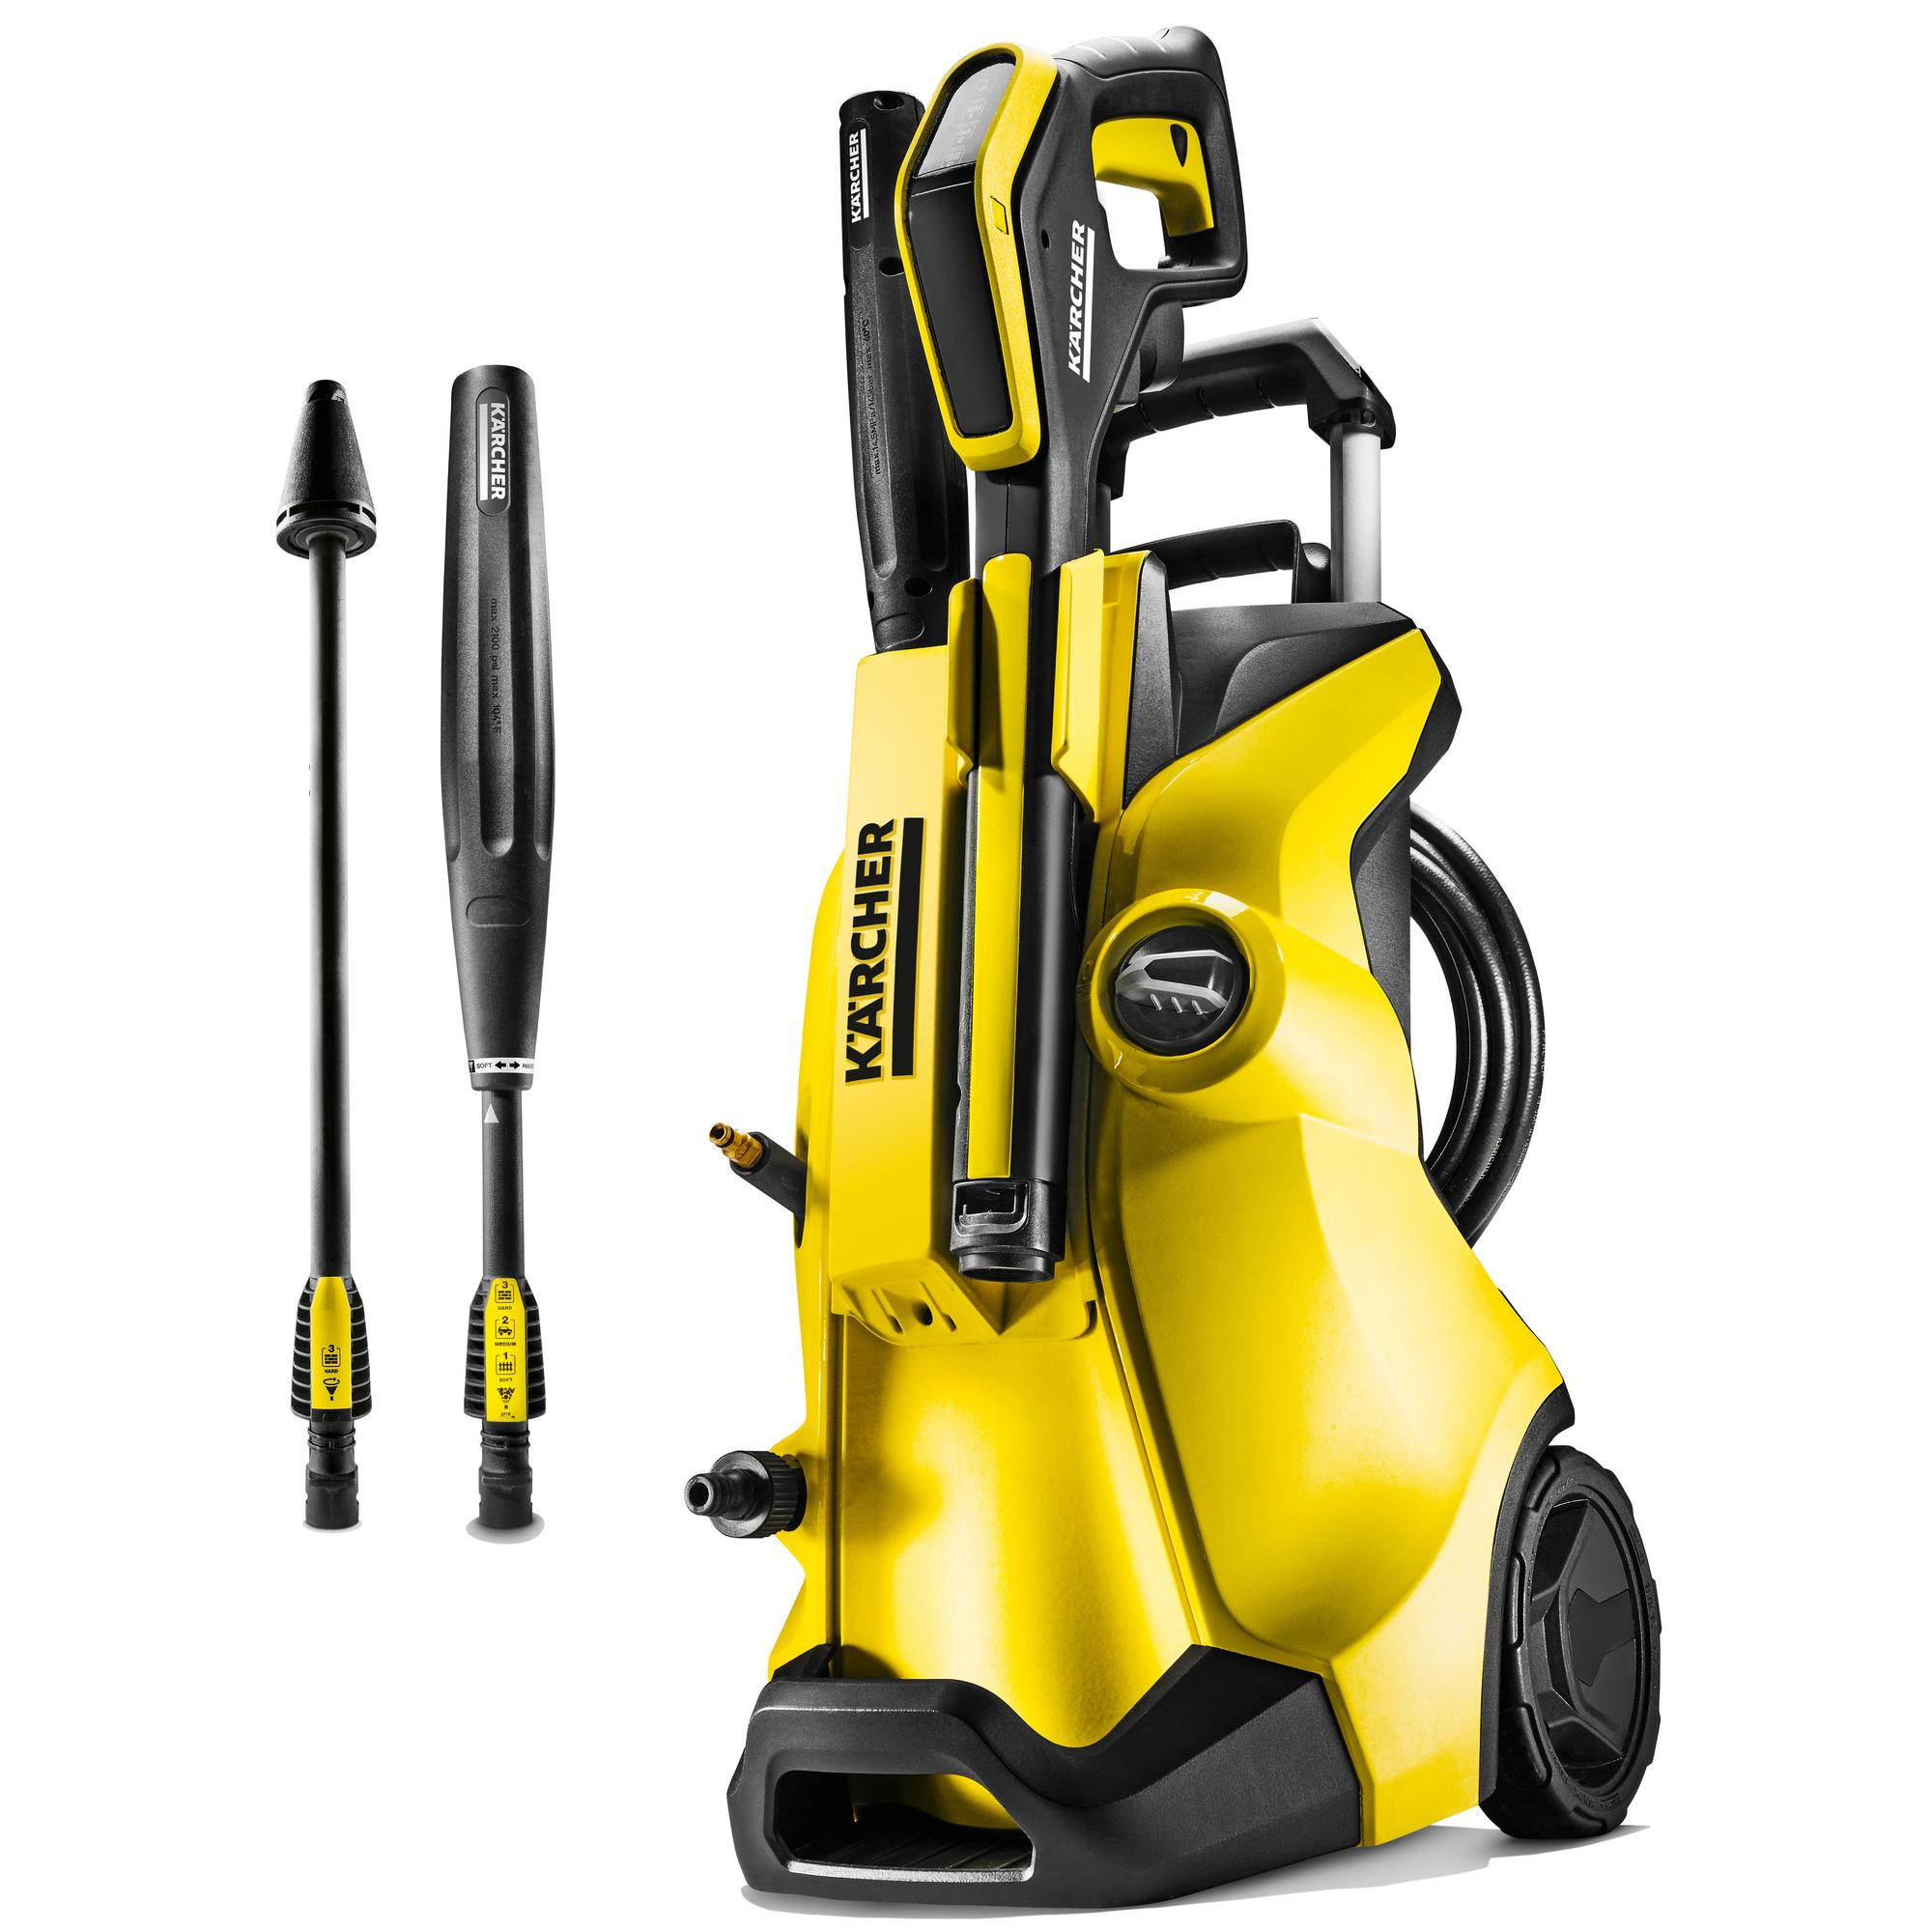 karcher k4 full control car bike patio garden home cleaner. Black Bedroom Furniture Sets. Home Design Ideas